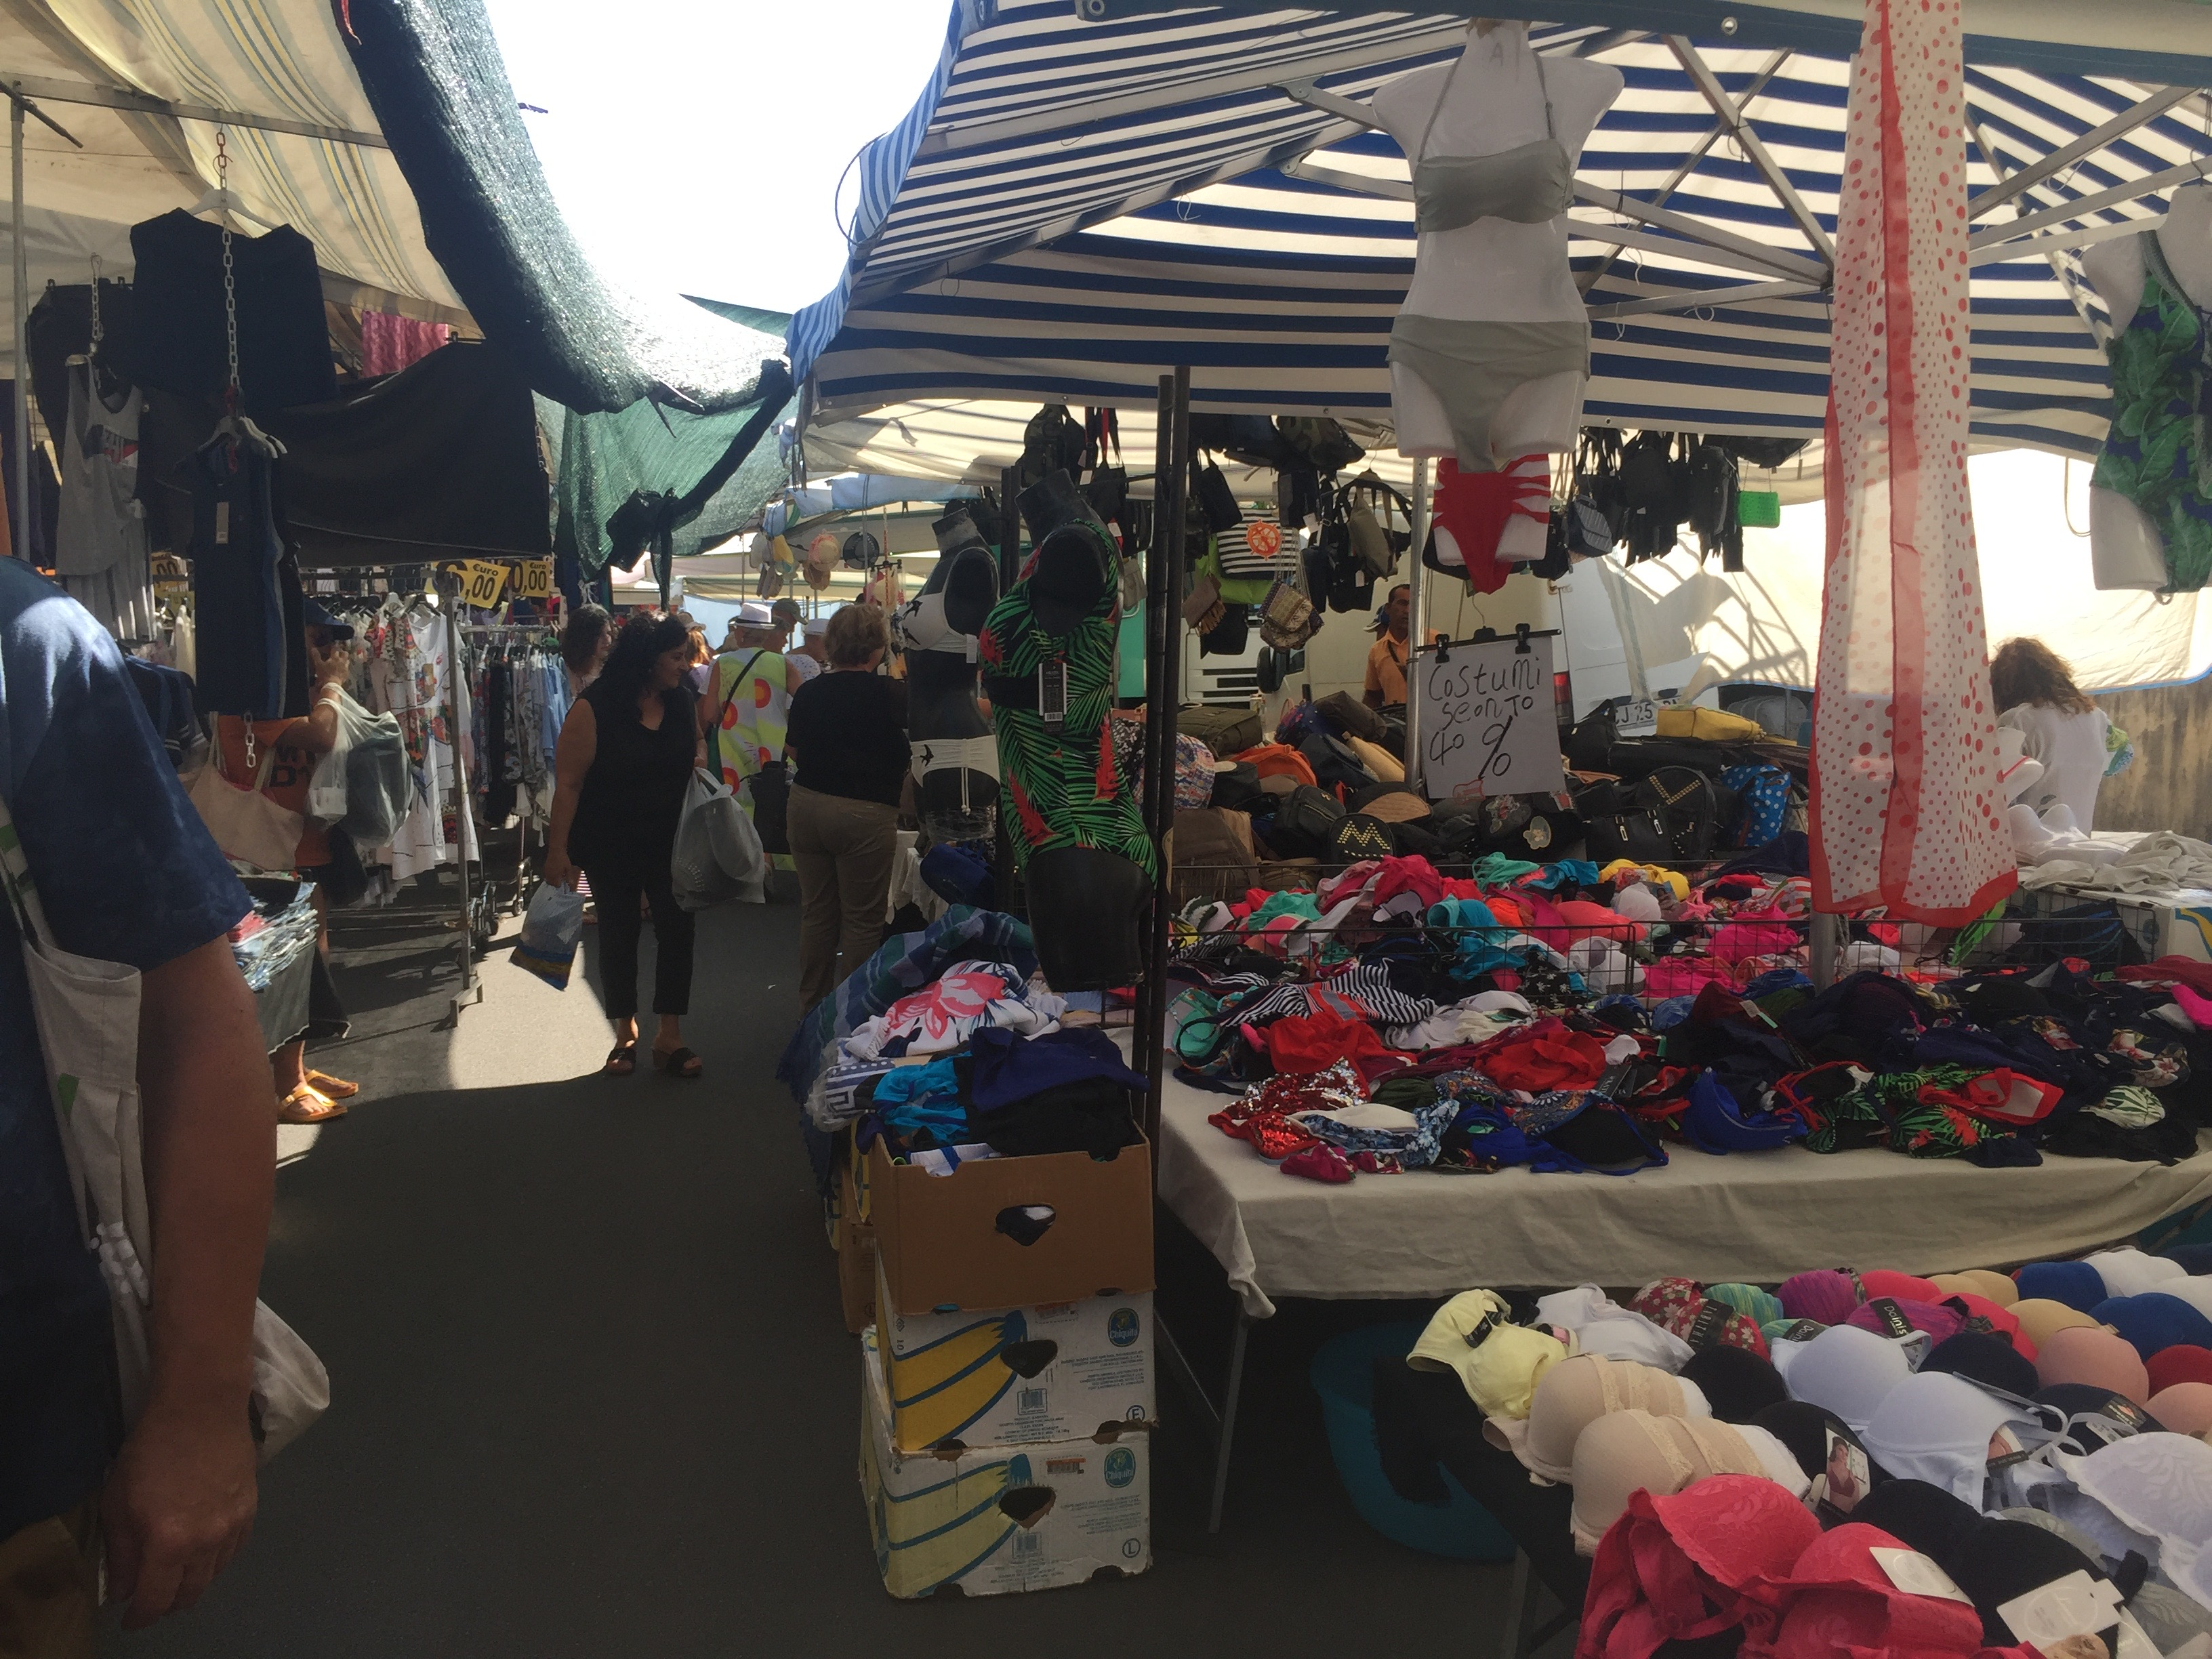 Scalea's Monday Market